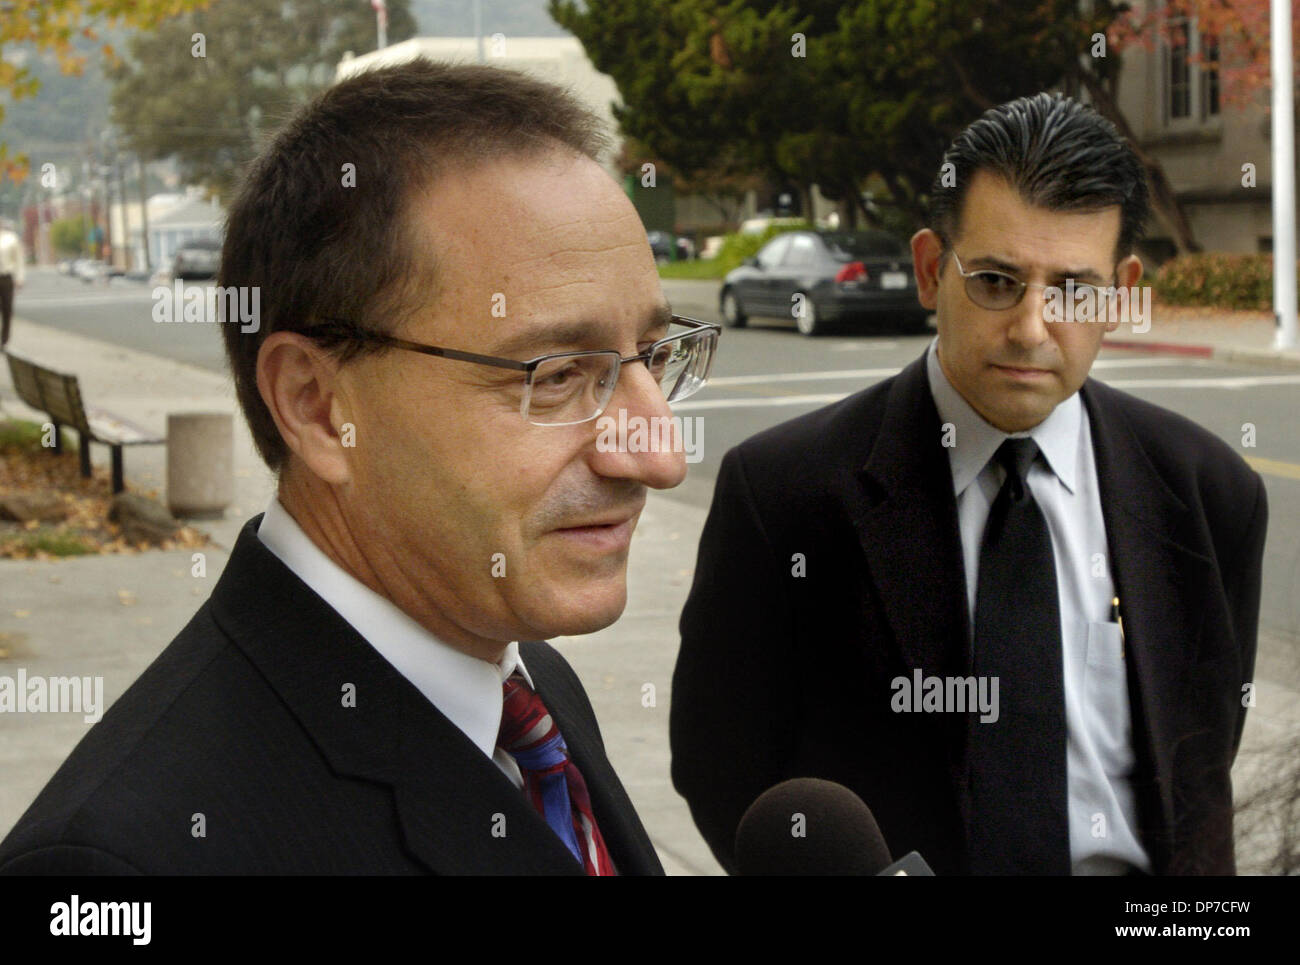 Nov 22, 2006; Martinez, CA, USA; Attorney Daniel Horowitz, left, talks about his client, Andrew Mantas, 16, not shown, outside of court in Martinez, Calif. on Wednesday  November 22, 2006.   At right is Peter Mantas, father of Andrew Mantas.  The judge had a court hearing to decide if Andrew Mantas is psychologically competent to stand trial for the killing of his mother.  Mandator - Stock Image